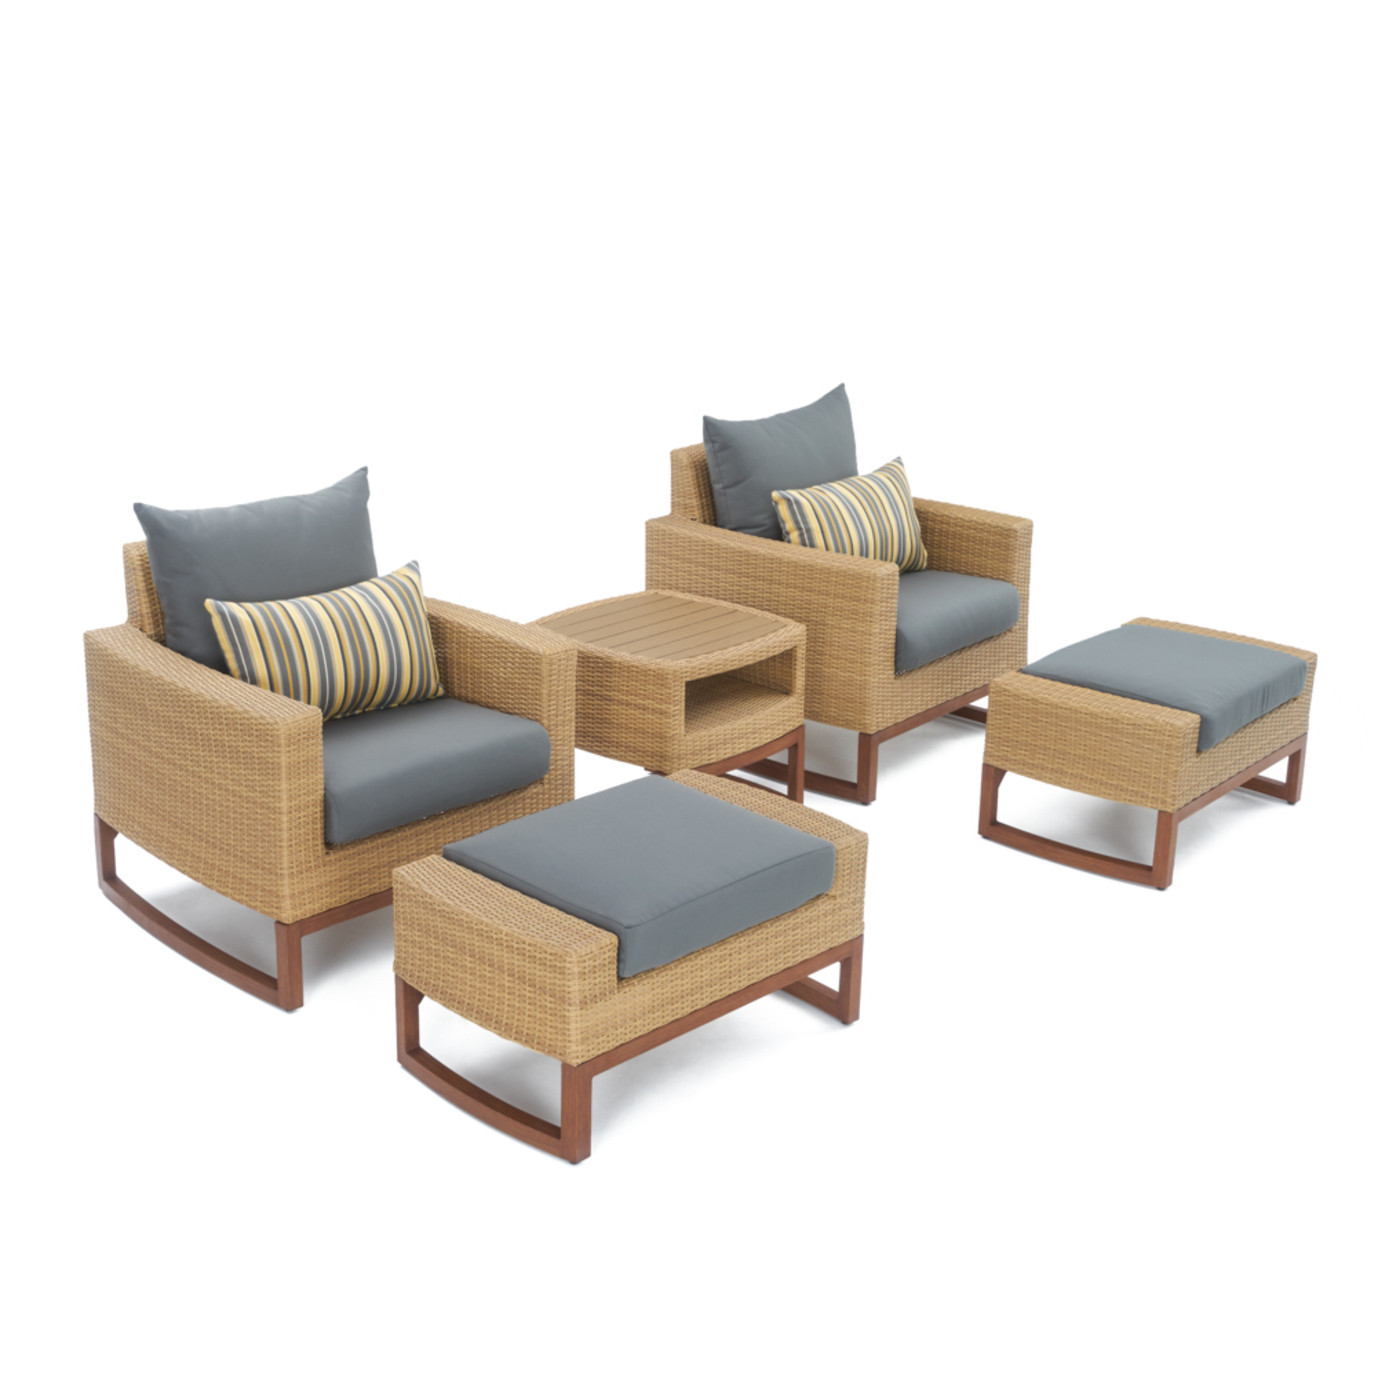 Mili™ 5pc Club Chair & Ottoman Set - Charcoal Gray